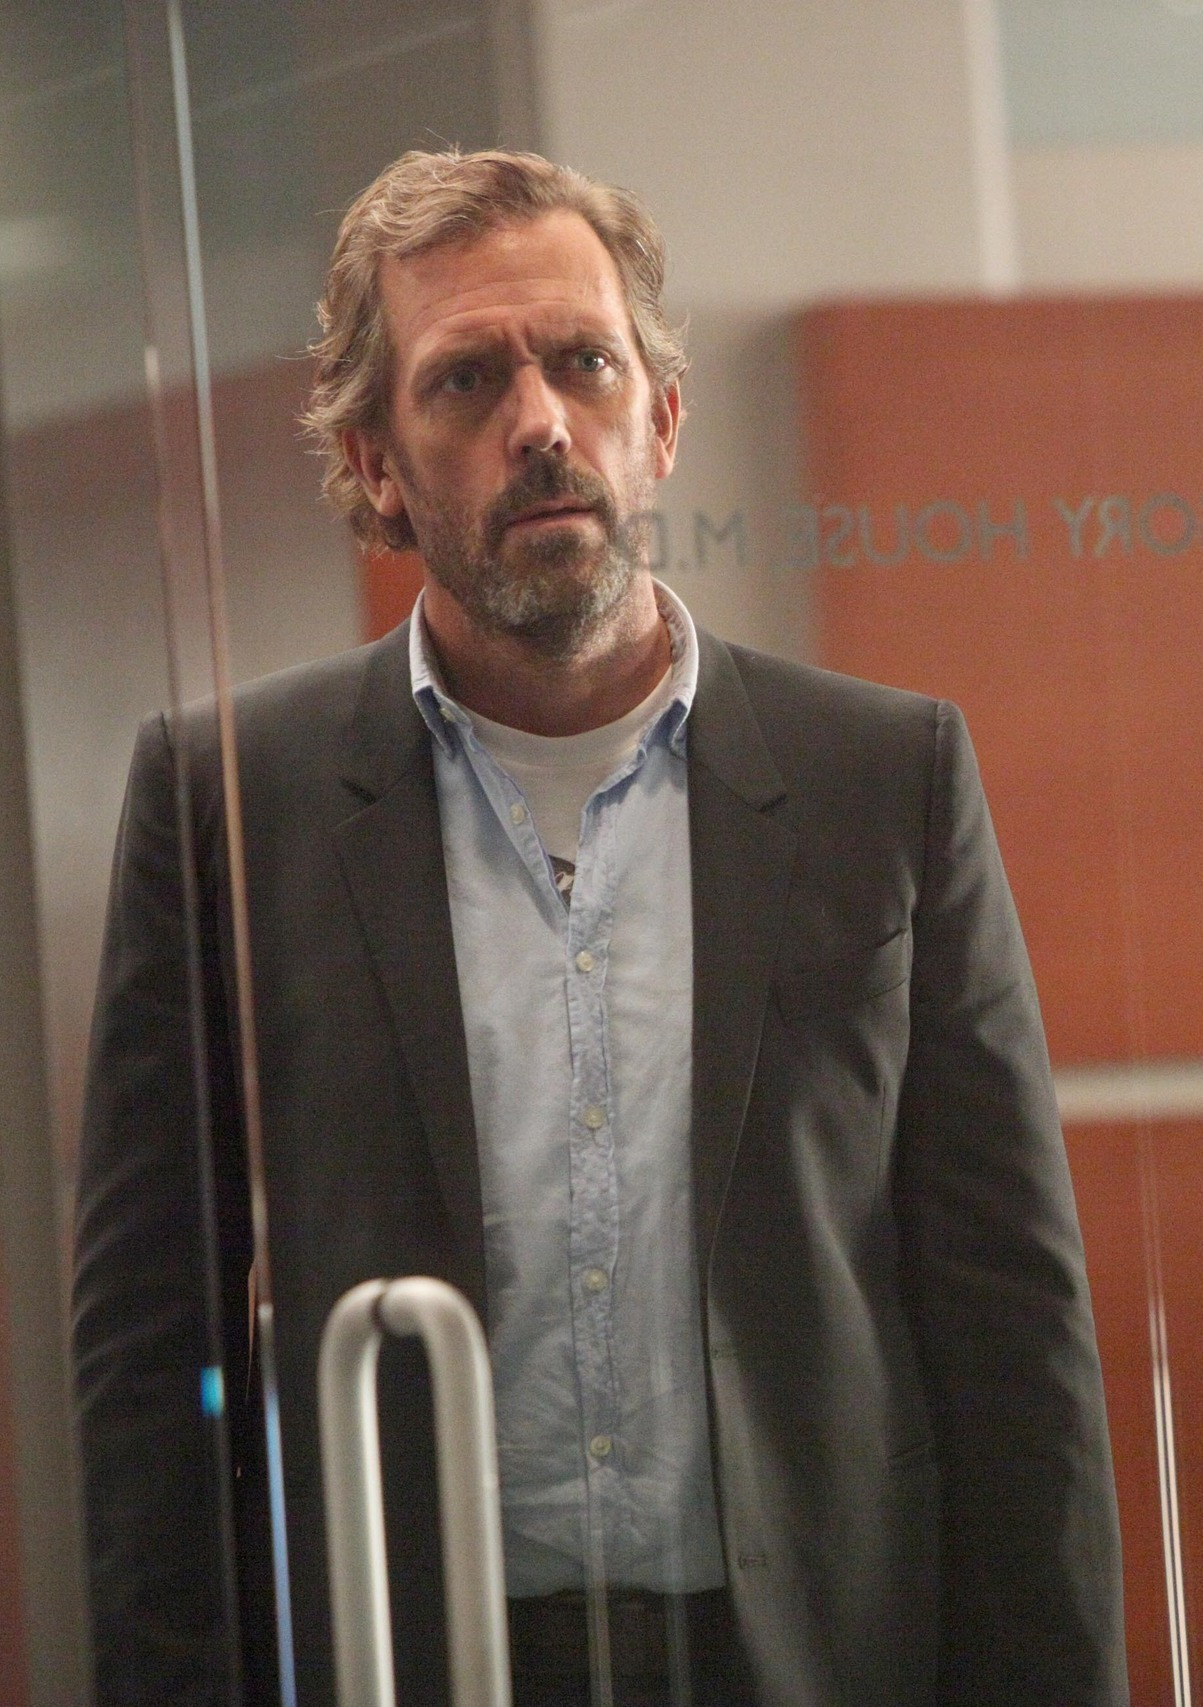 8x02 Transplant Promotional Photo HQ House Md 25629703 2560 1707